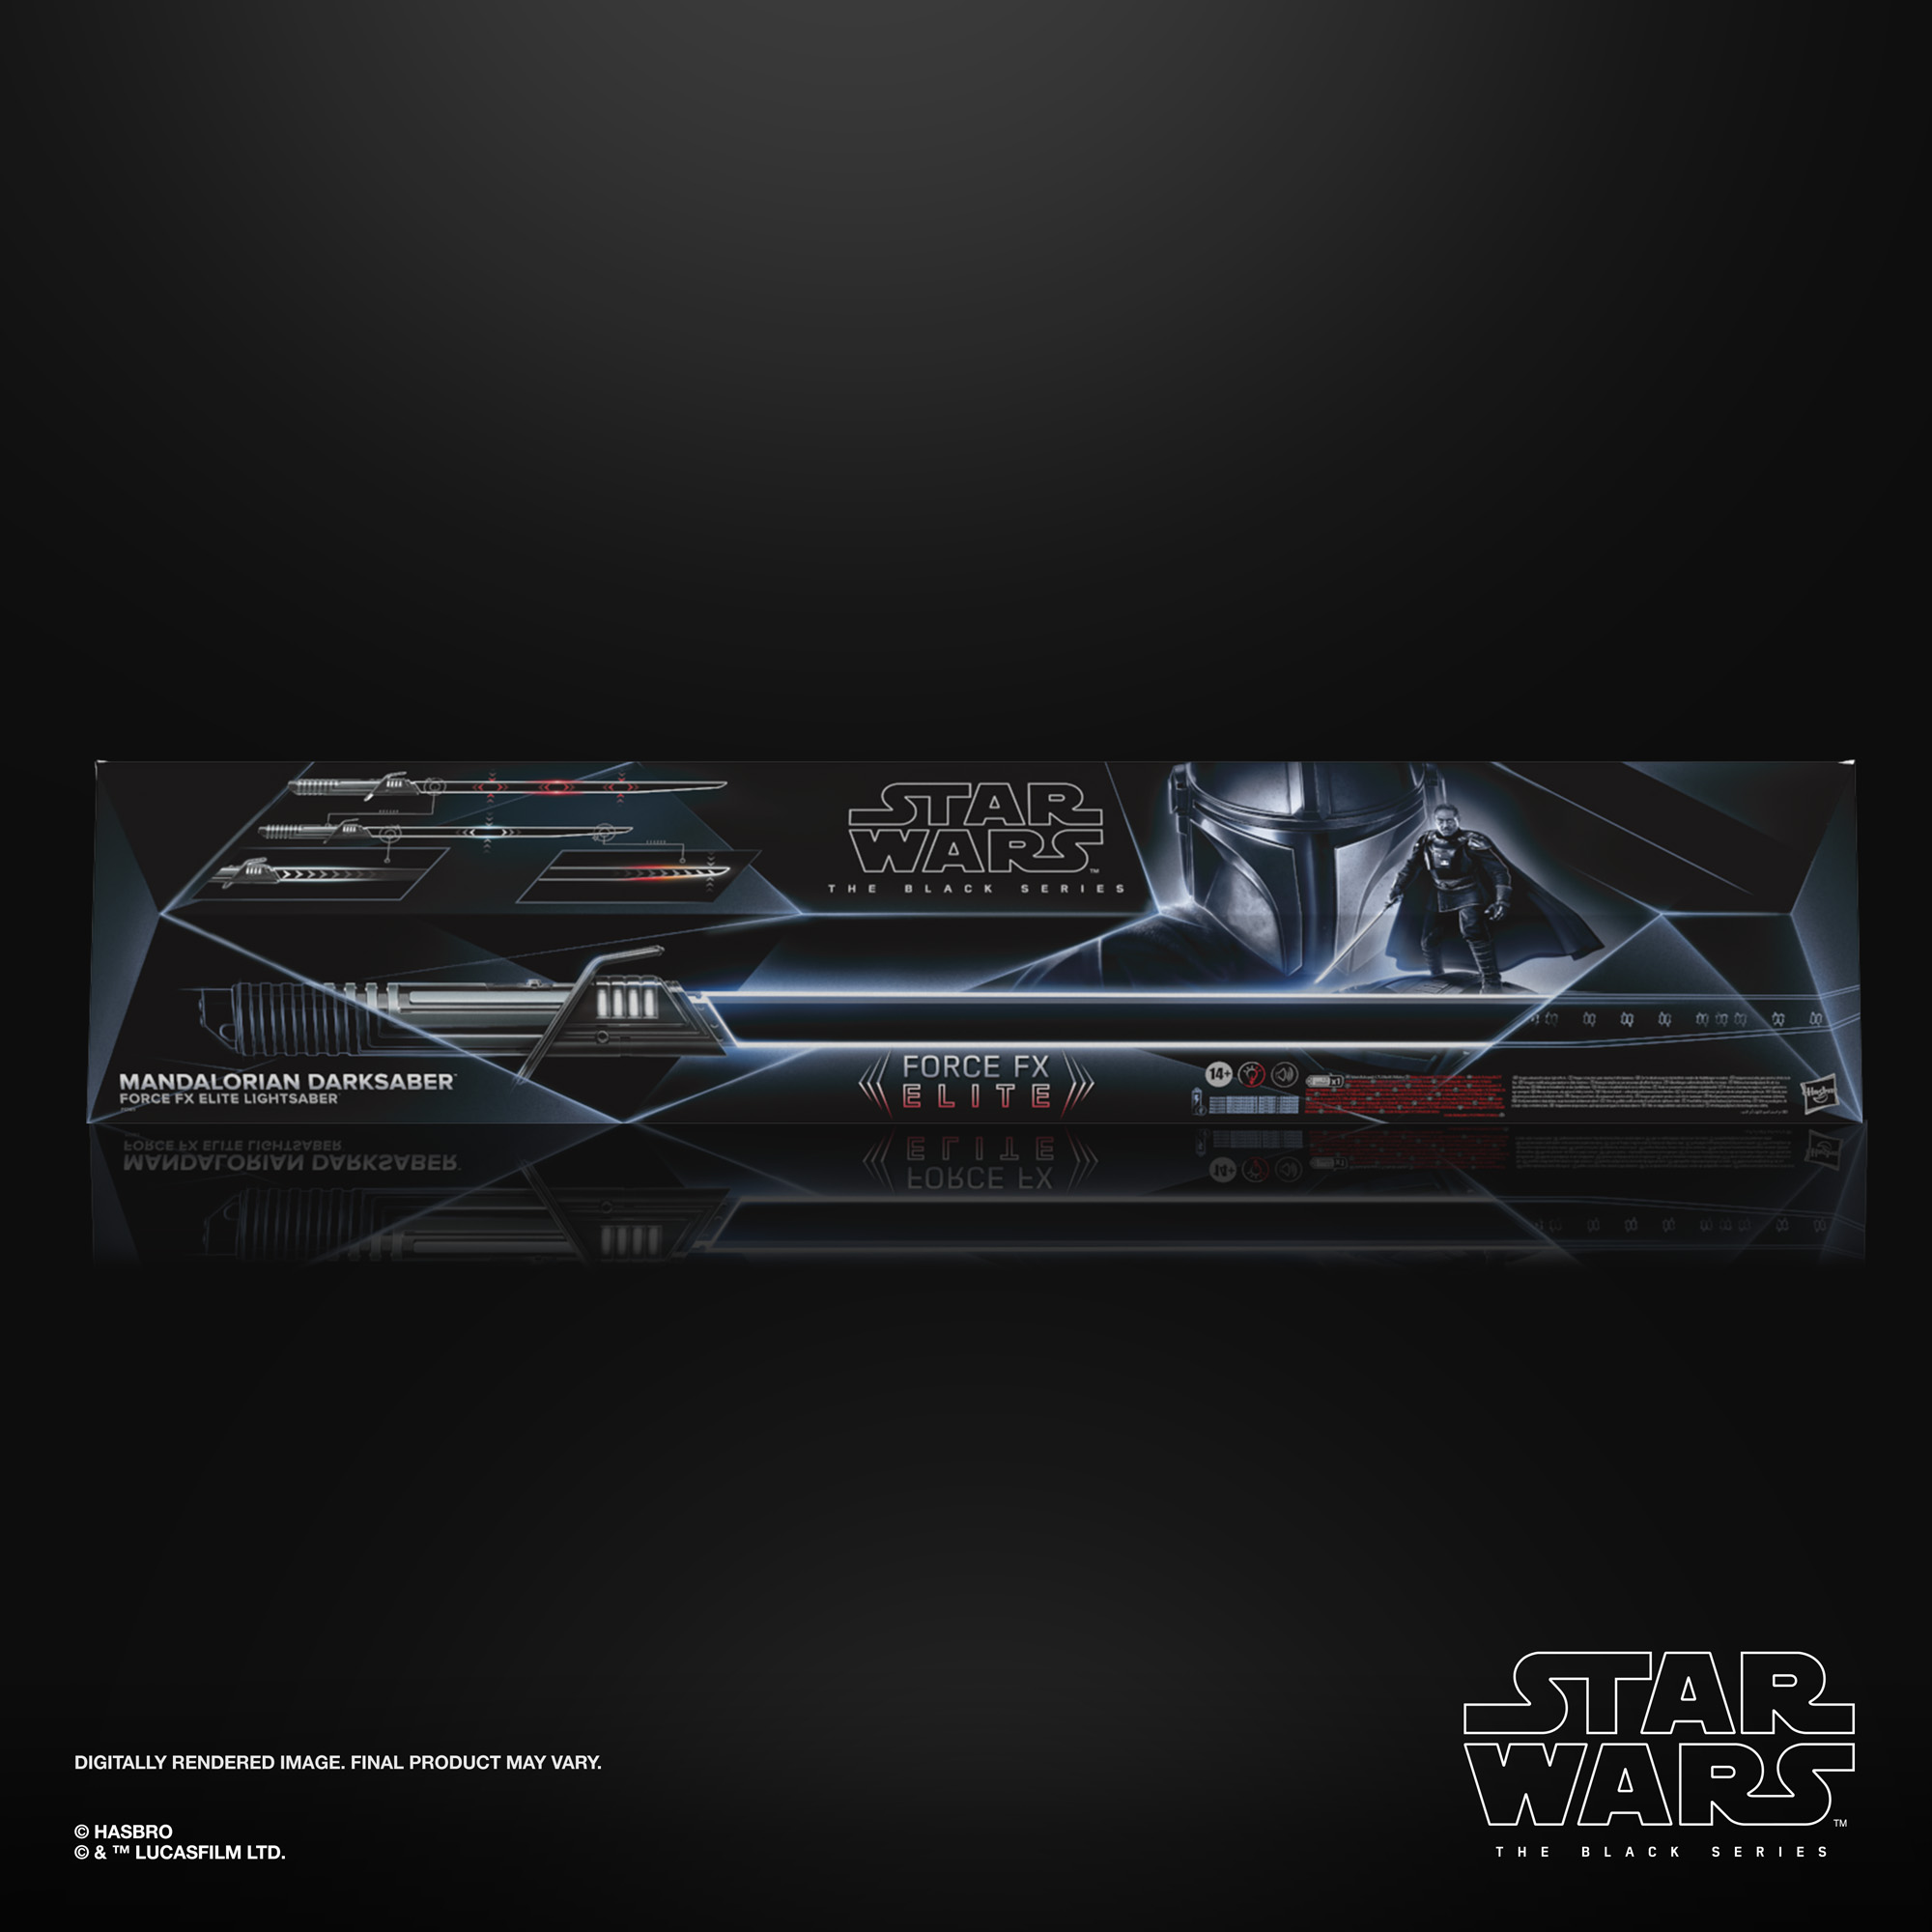 Star Wars The Black Series Mandalorian Darksaber Force FX Elite Lightsaber F12695L00 5010993802227